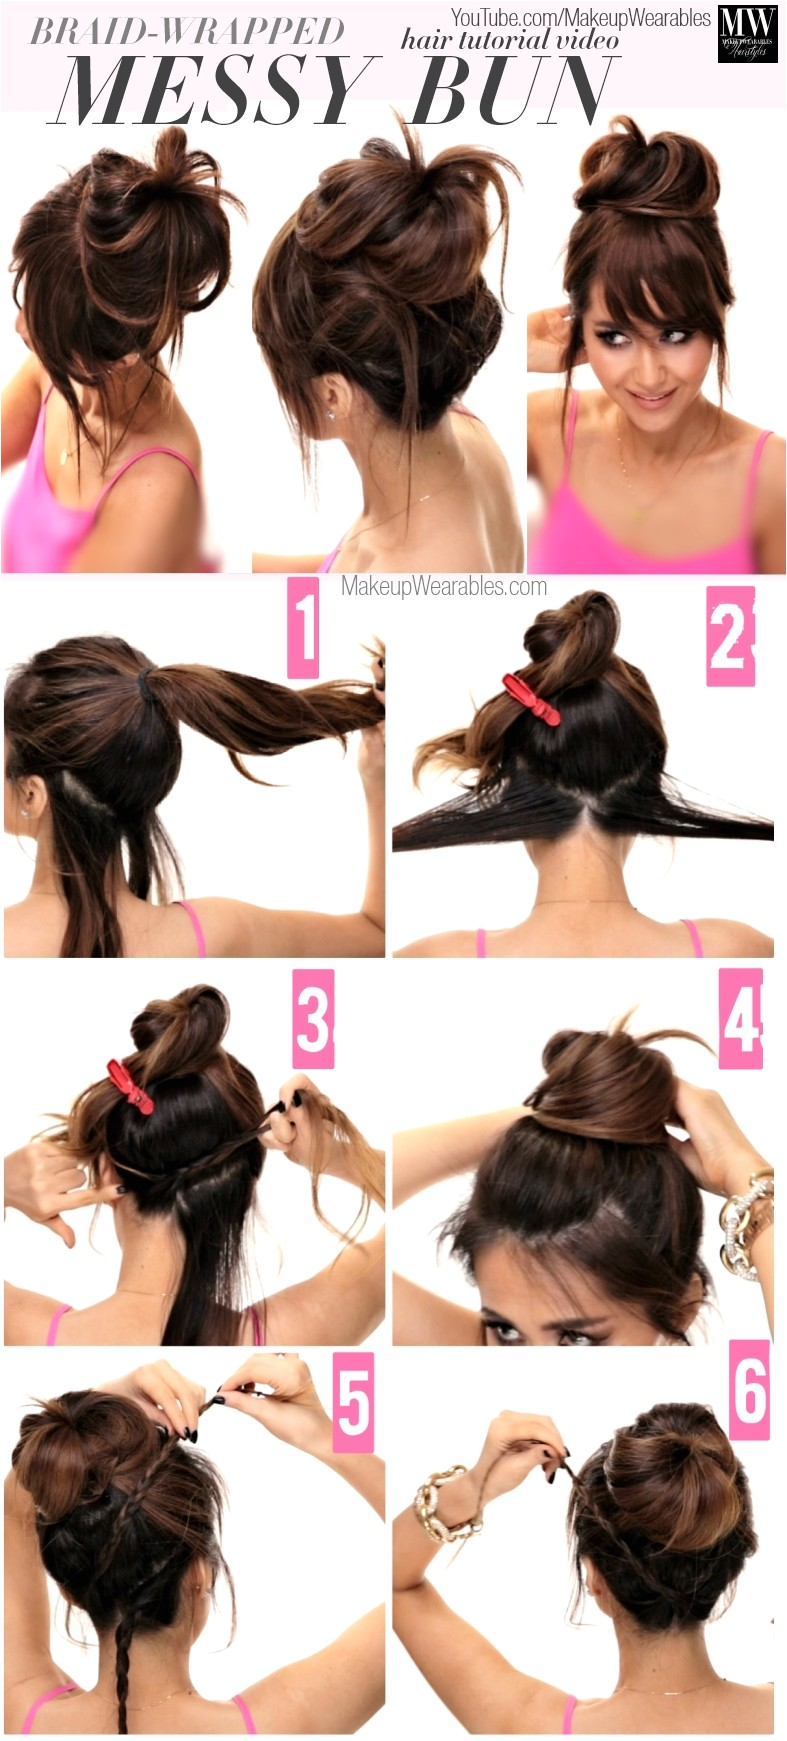 lazy girl hairstyles tutorial